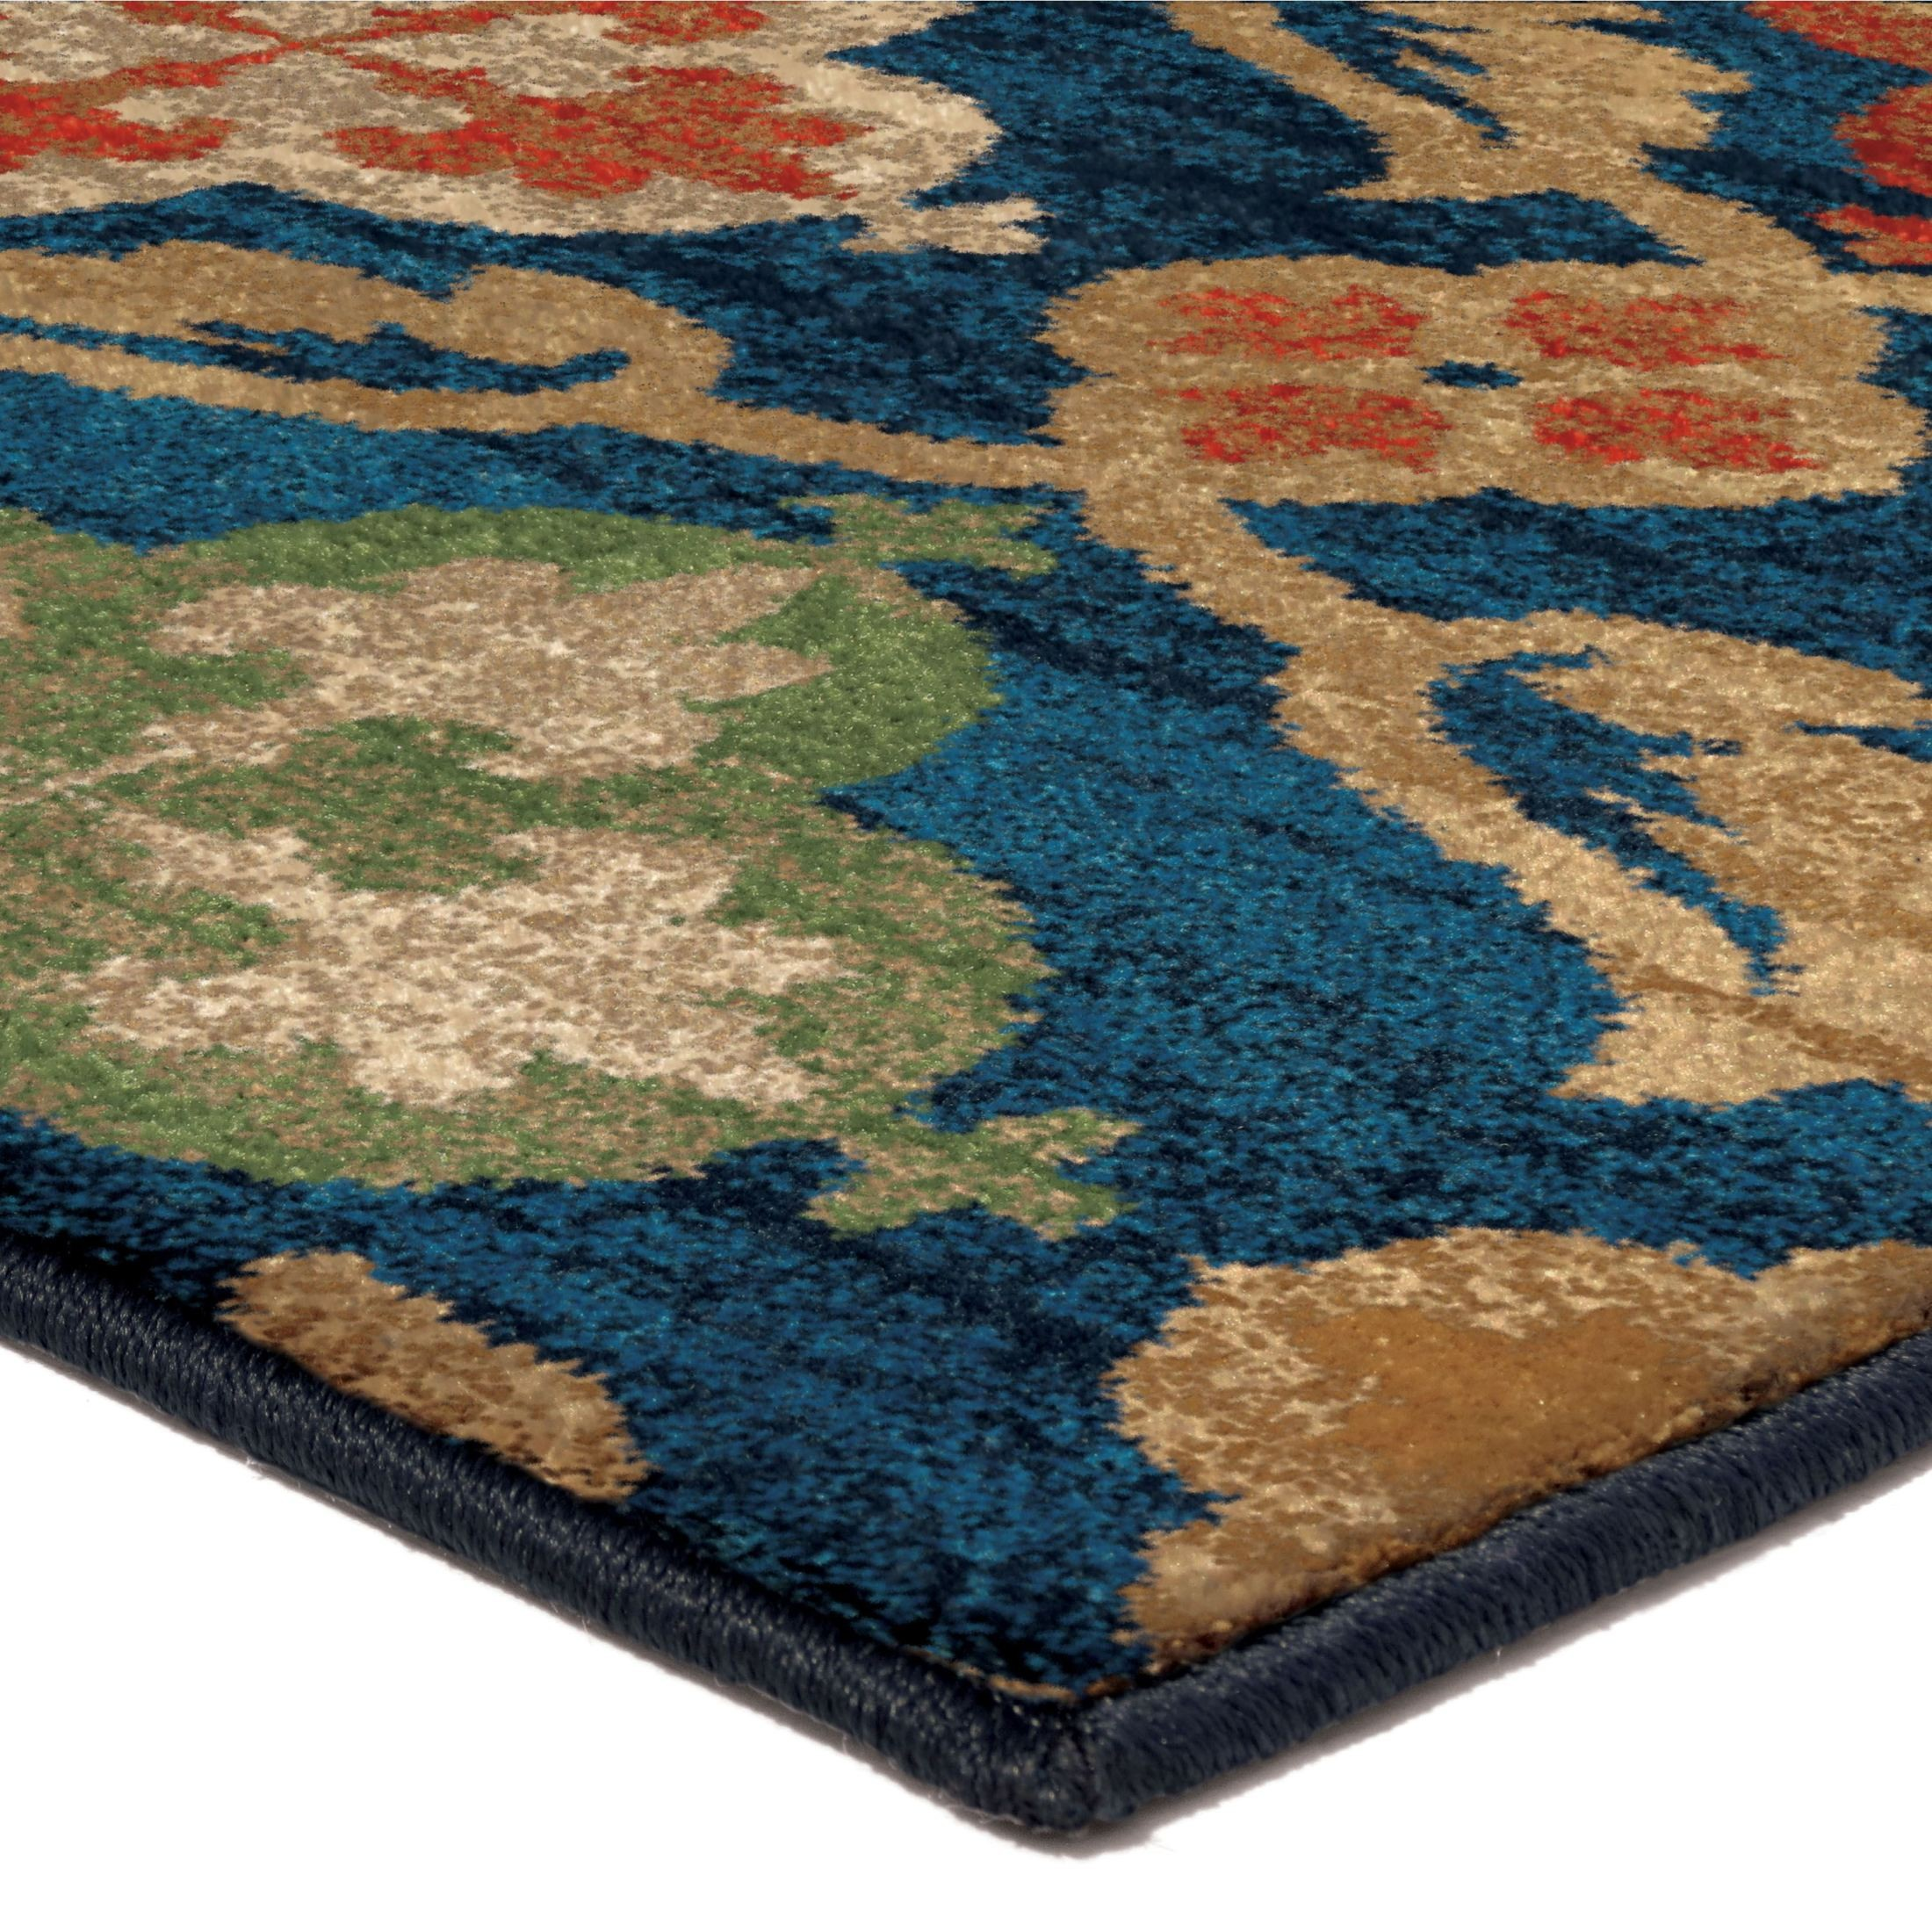 orian rugs bright color medallion tuscan field blue area small rug 3837 5x8 orian rugs. Black Bedroom Furniture Sets. Home Design Ideas